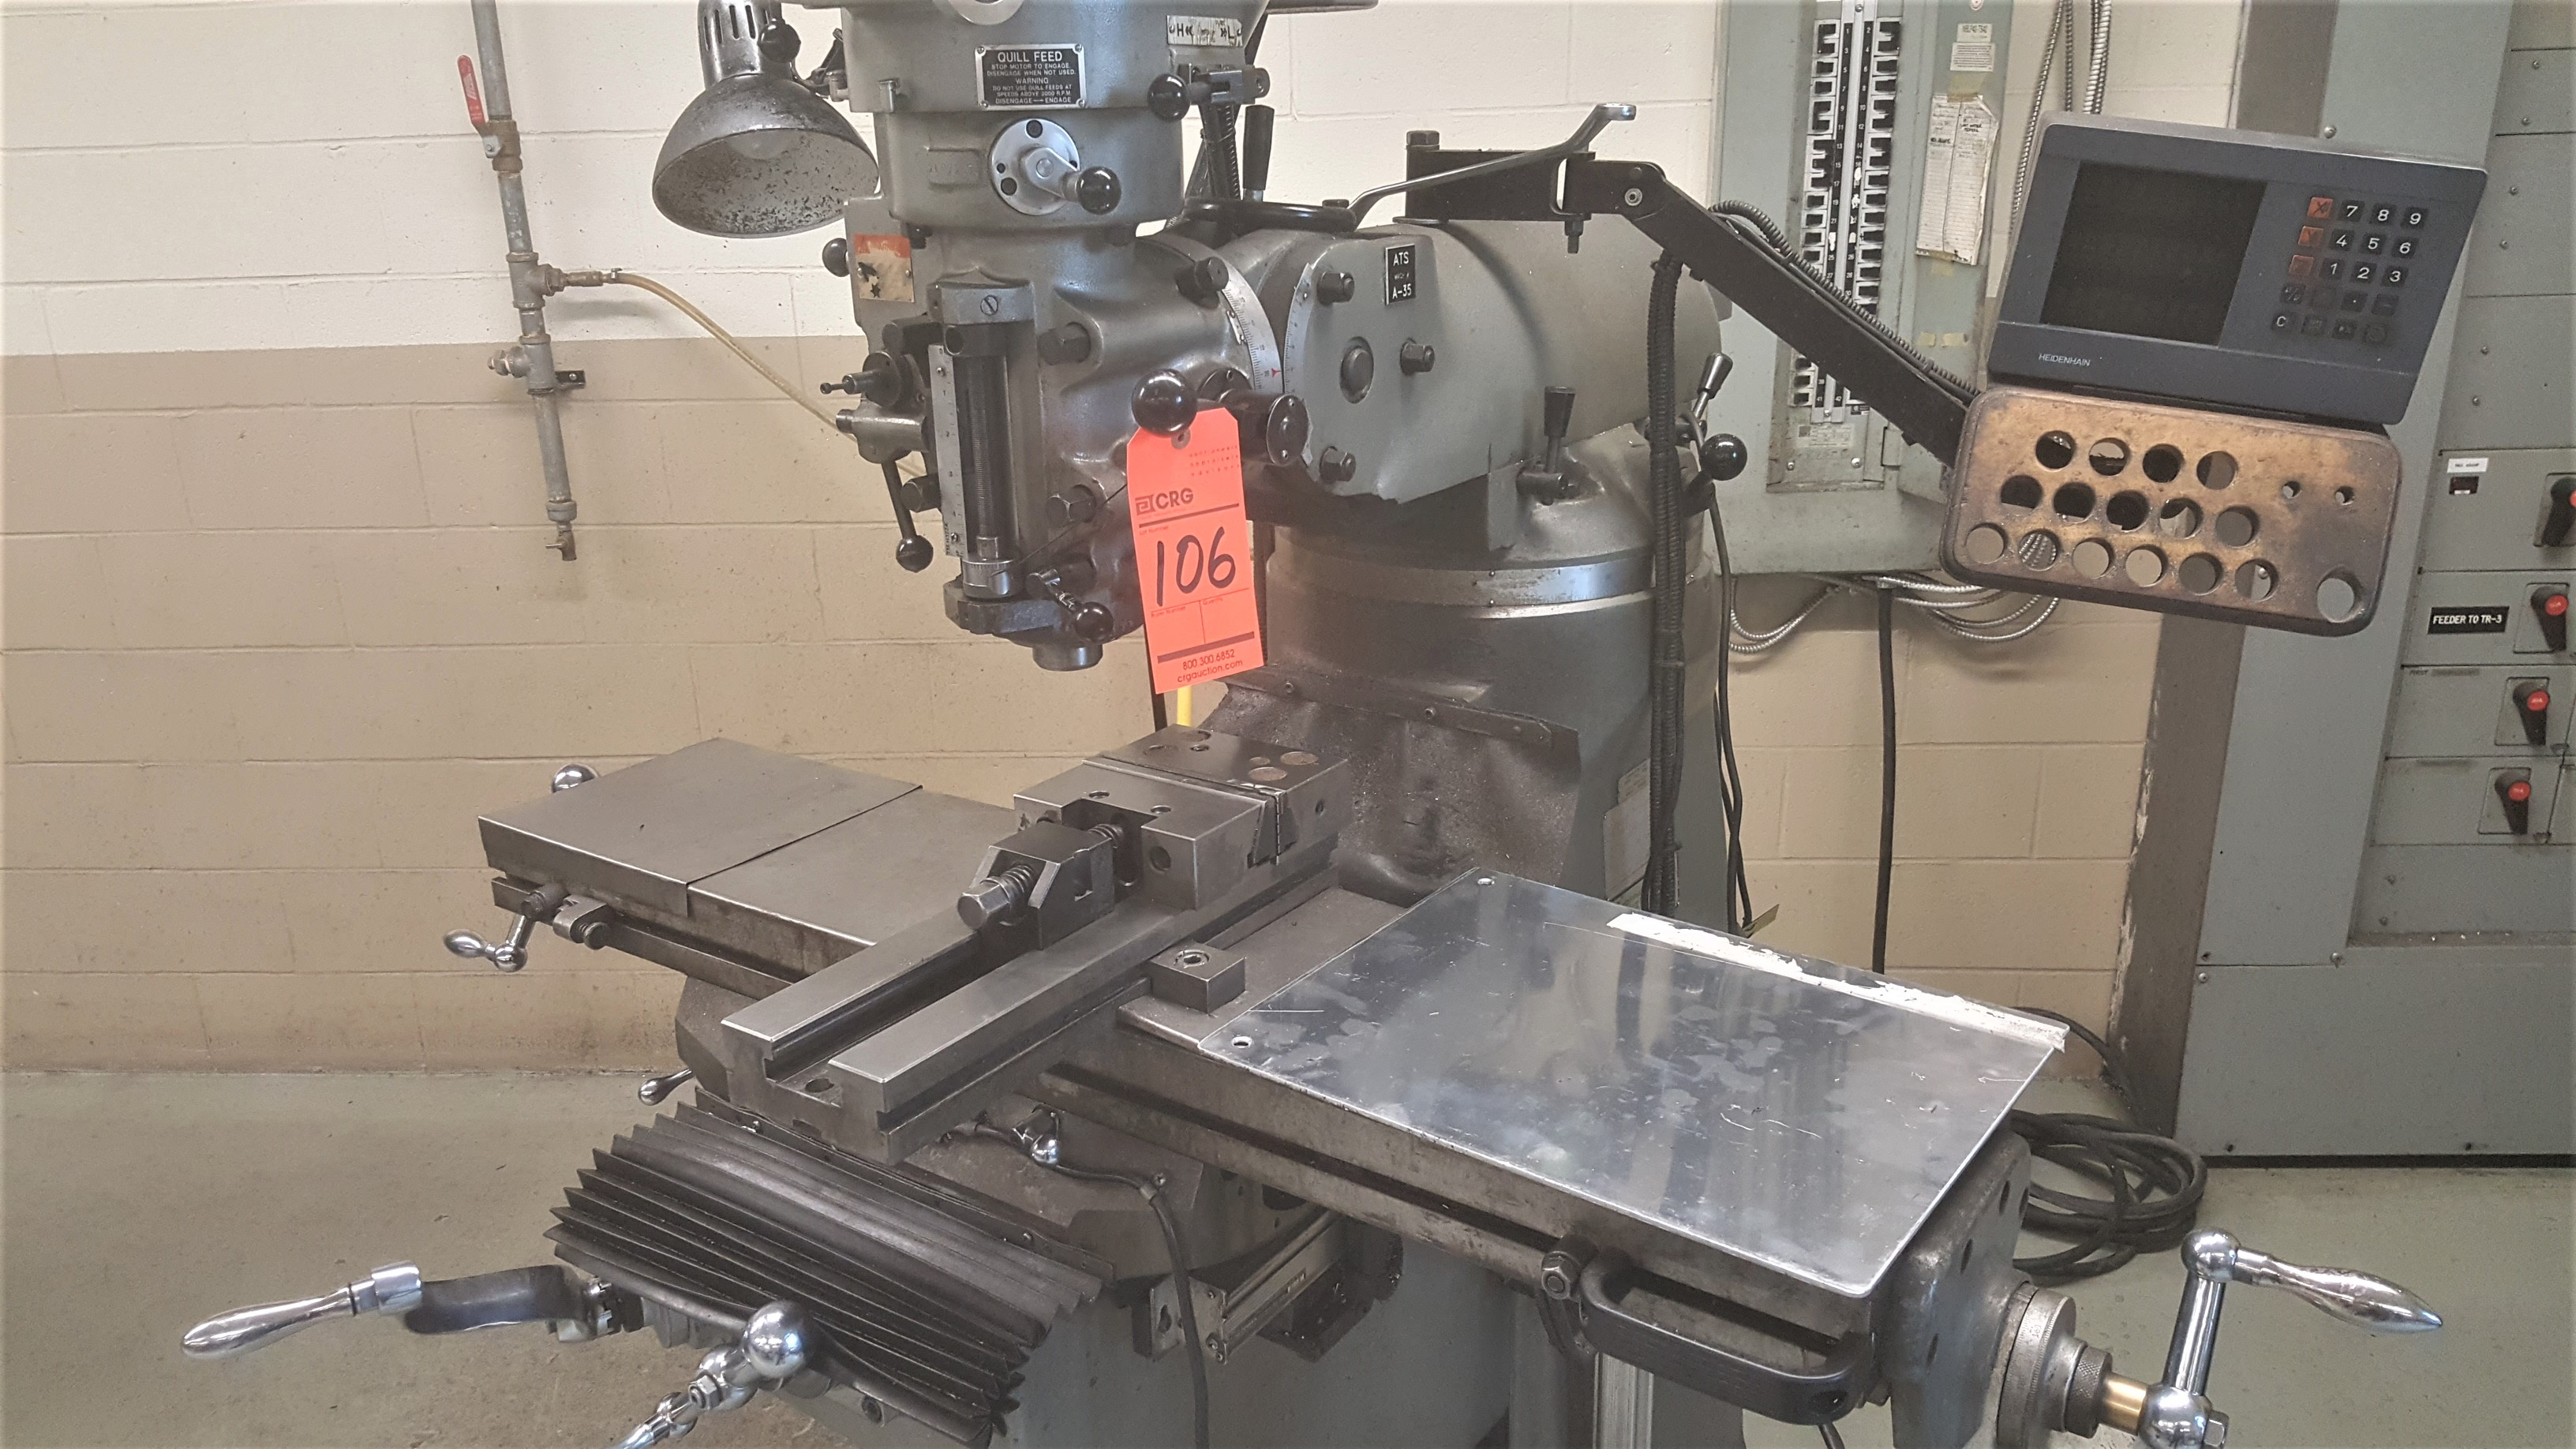 Lot 106 - FIRST 2.5 HP 3 PH vertical milling machine, servo-feed table, power draw bar, with DRO